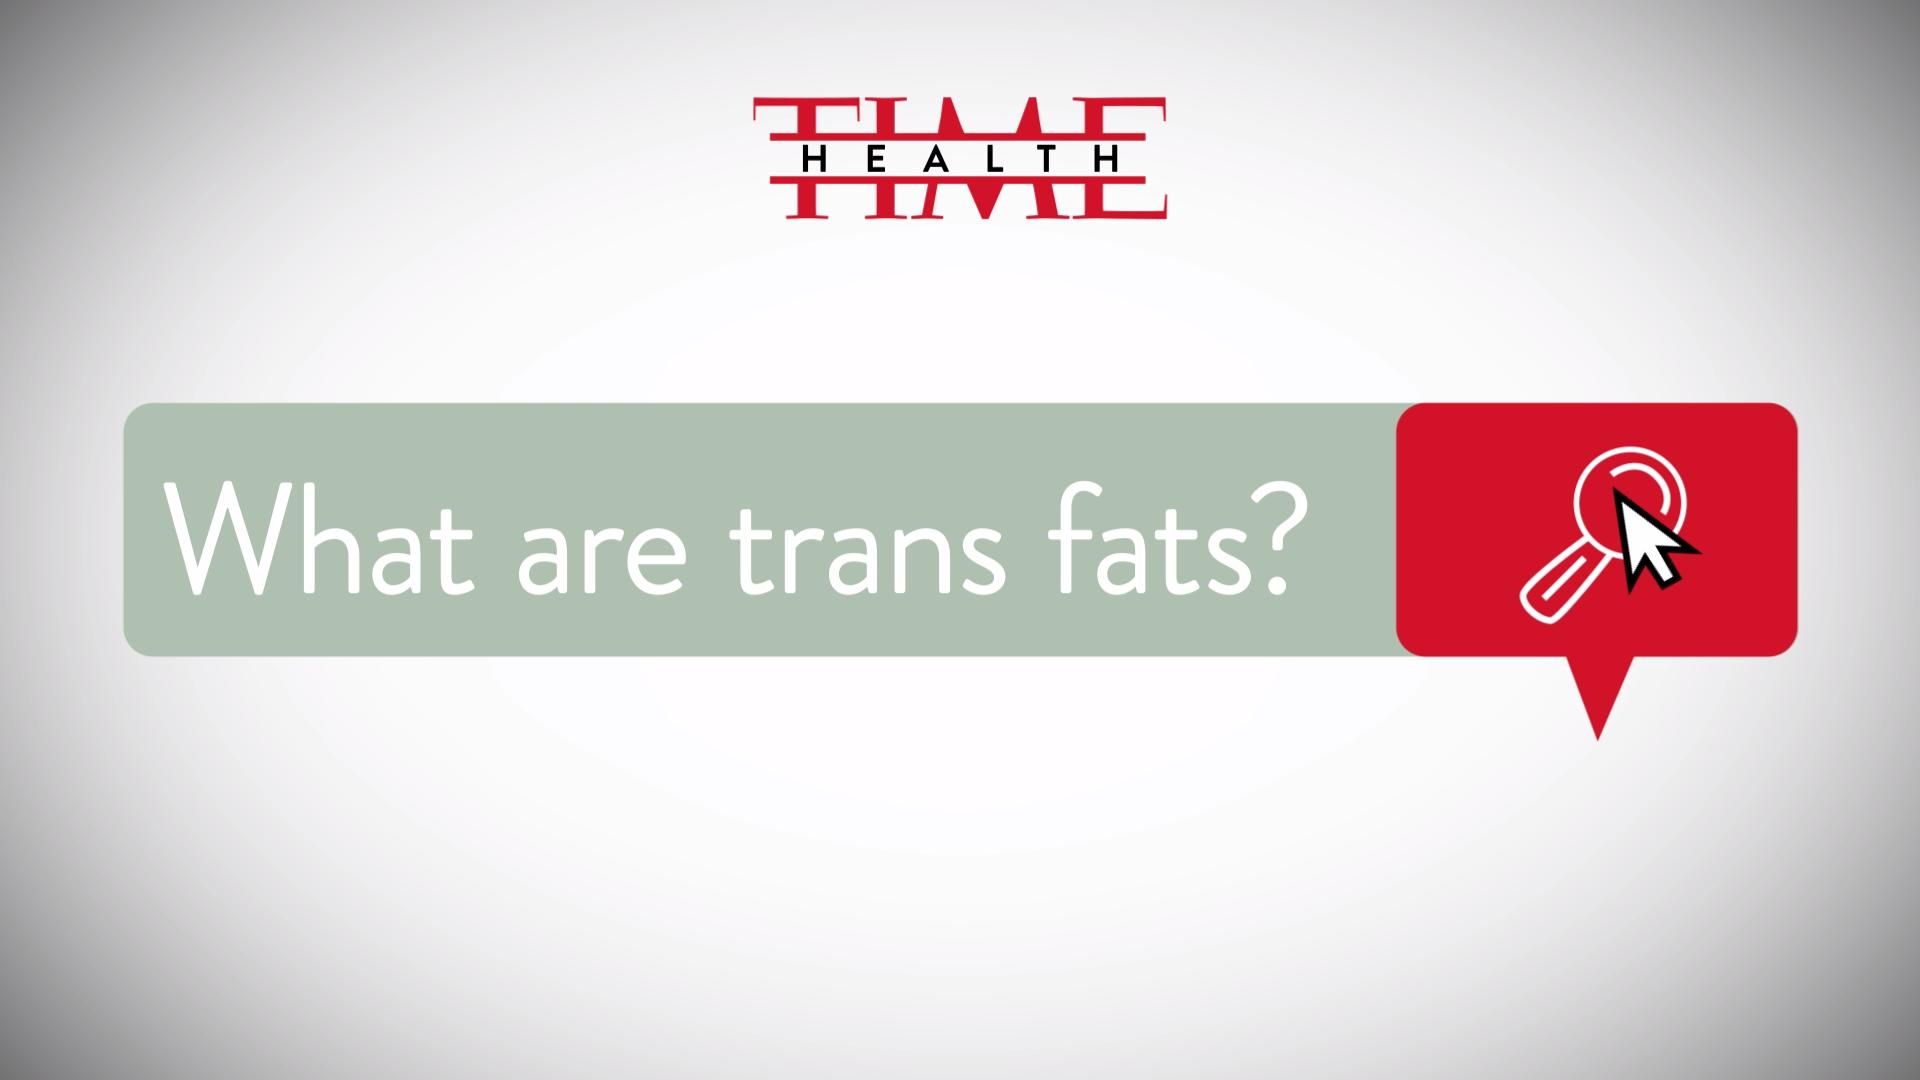 Trans fat is dangerous